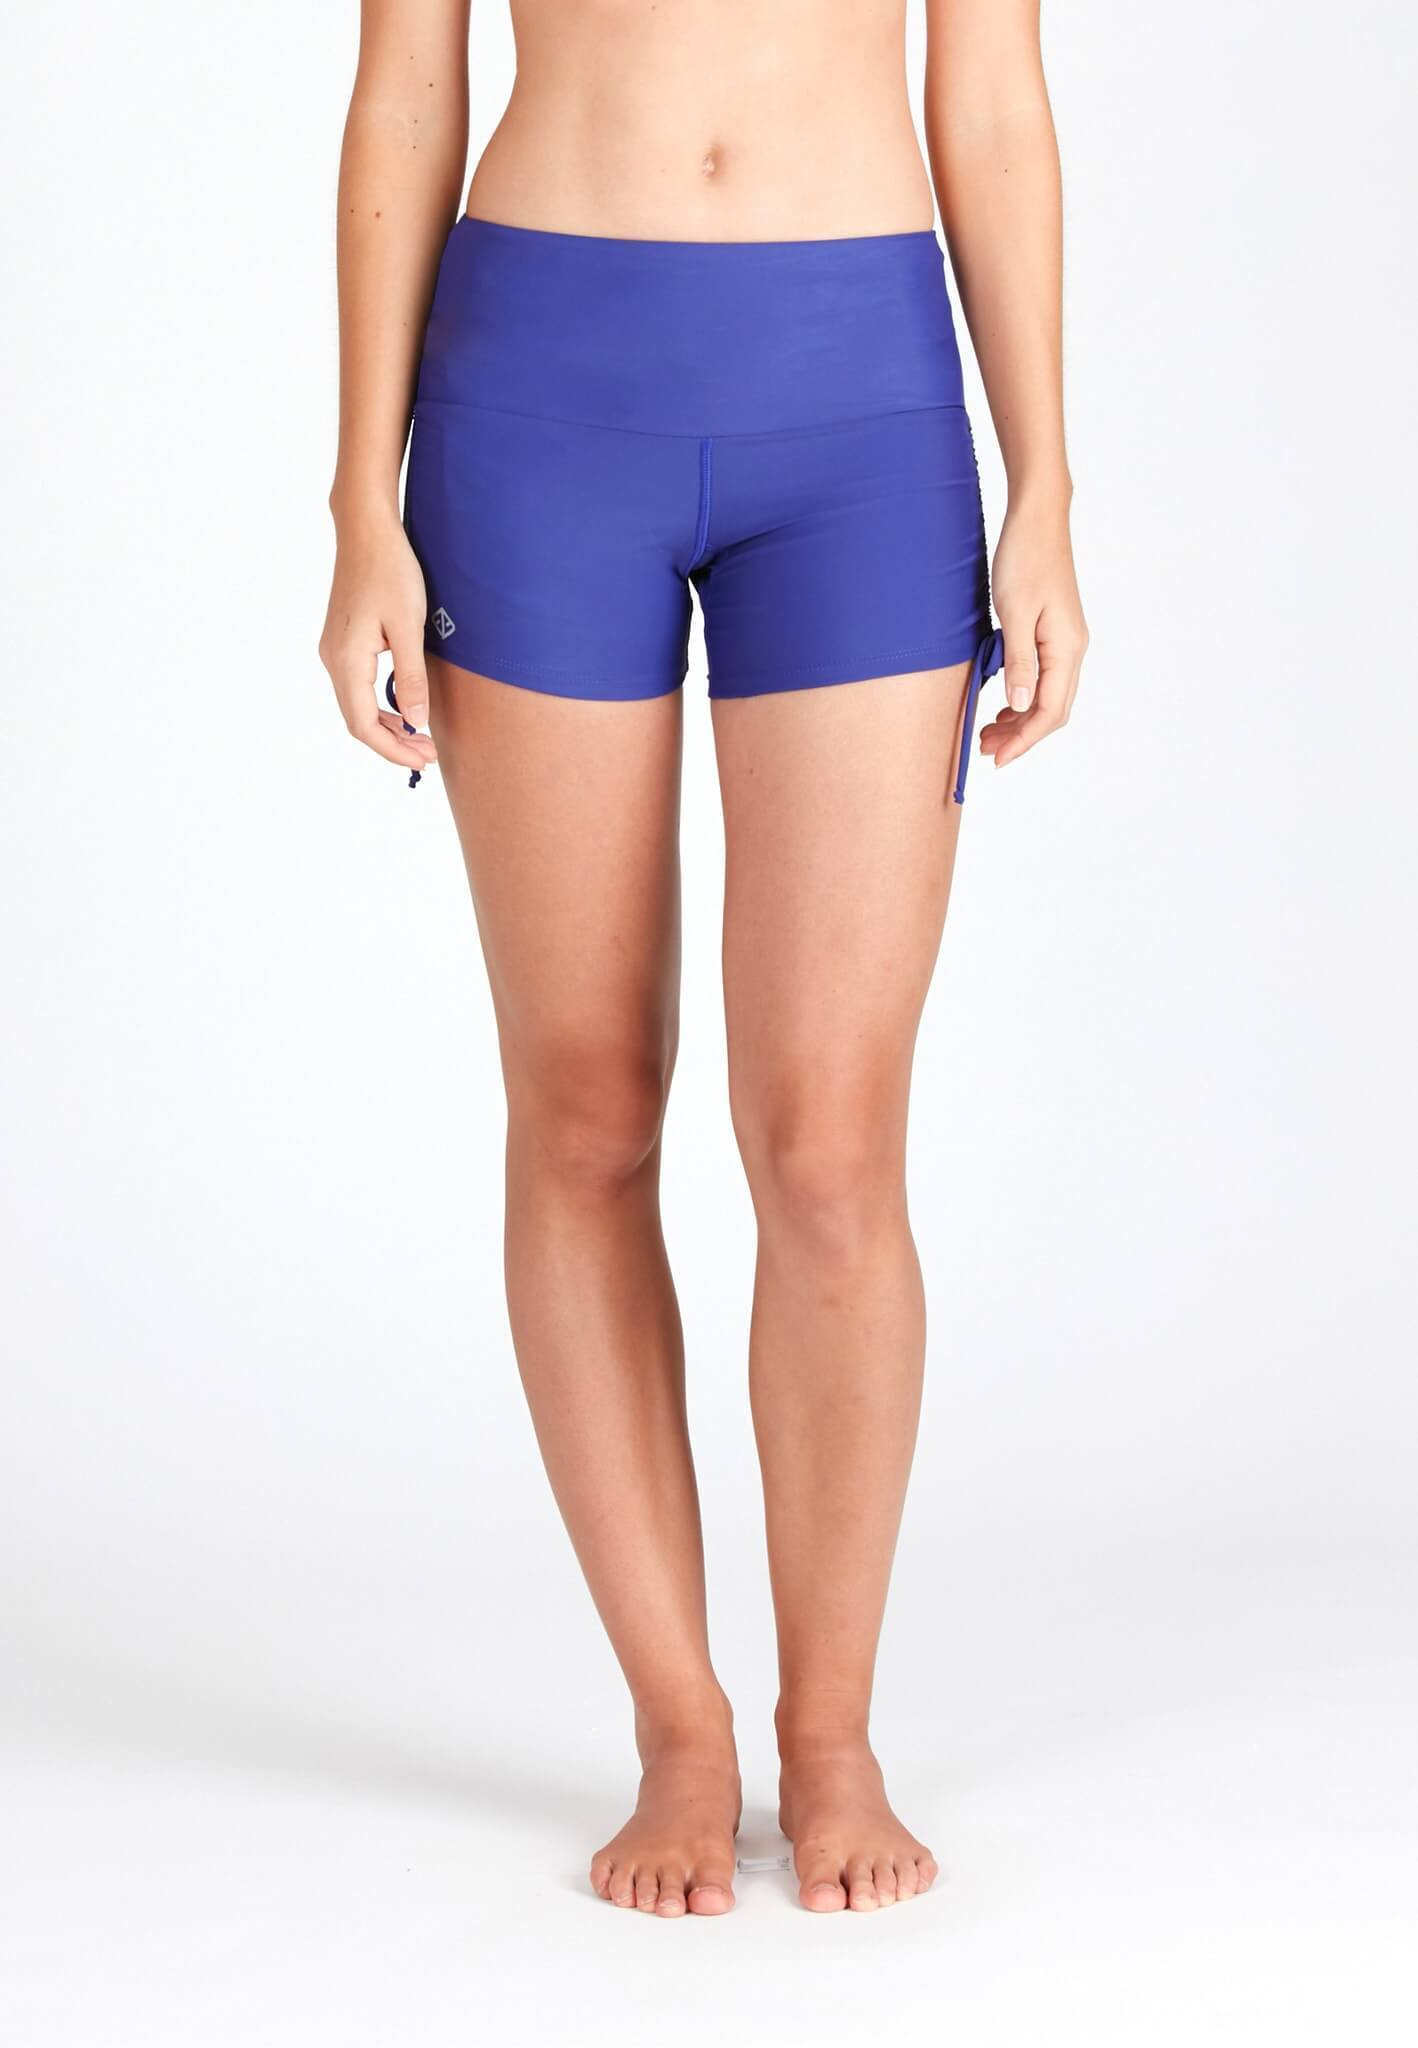 Wide Waistband Shorts in Reflex Blue - FUNFIT